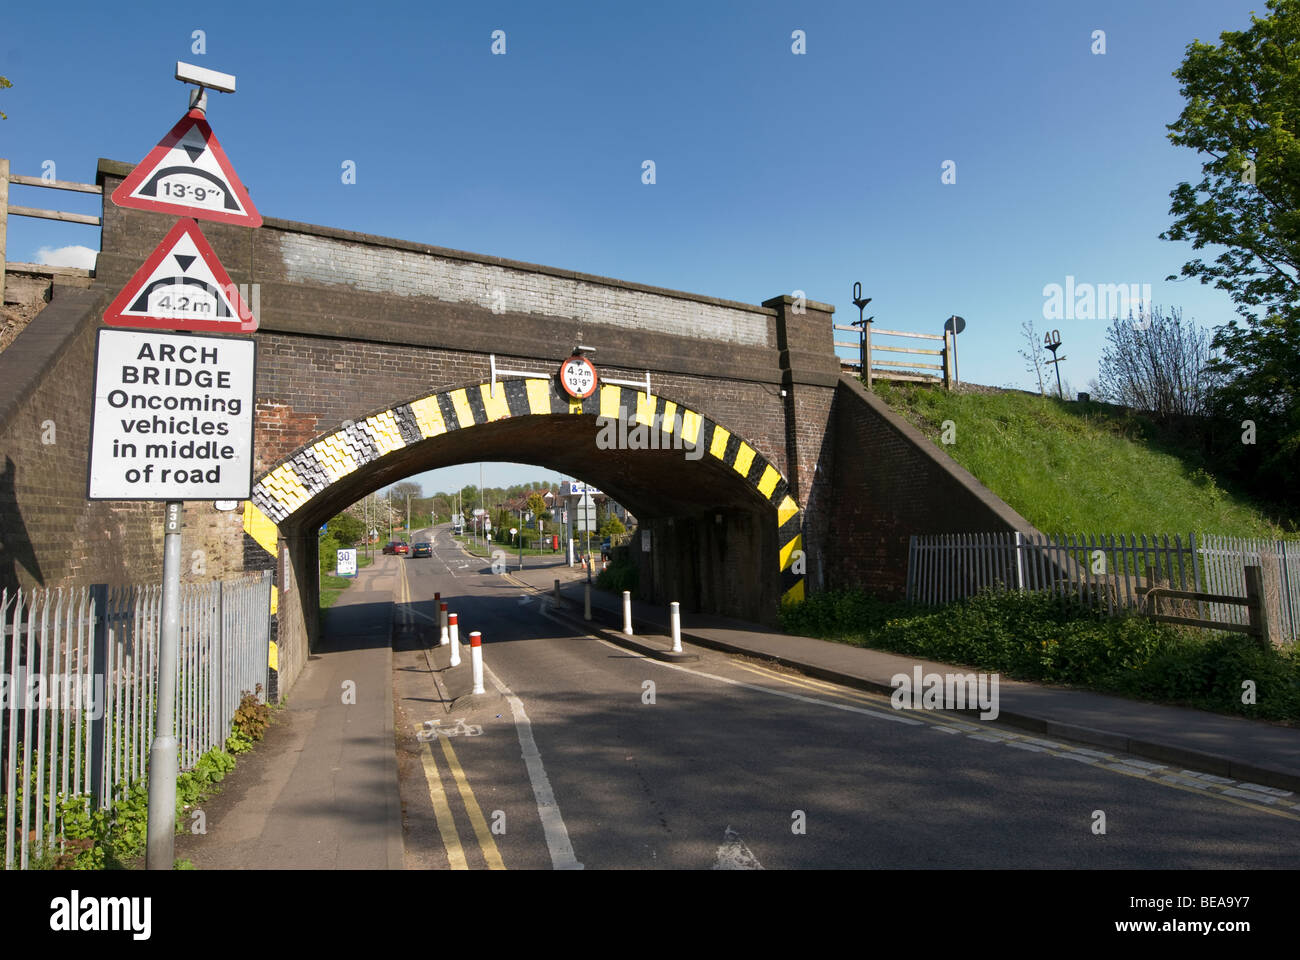 Road markings guiding traffic single file beneath a height restricted railway bridge in England - Stock Image